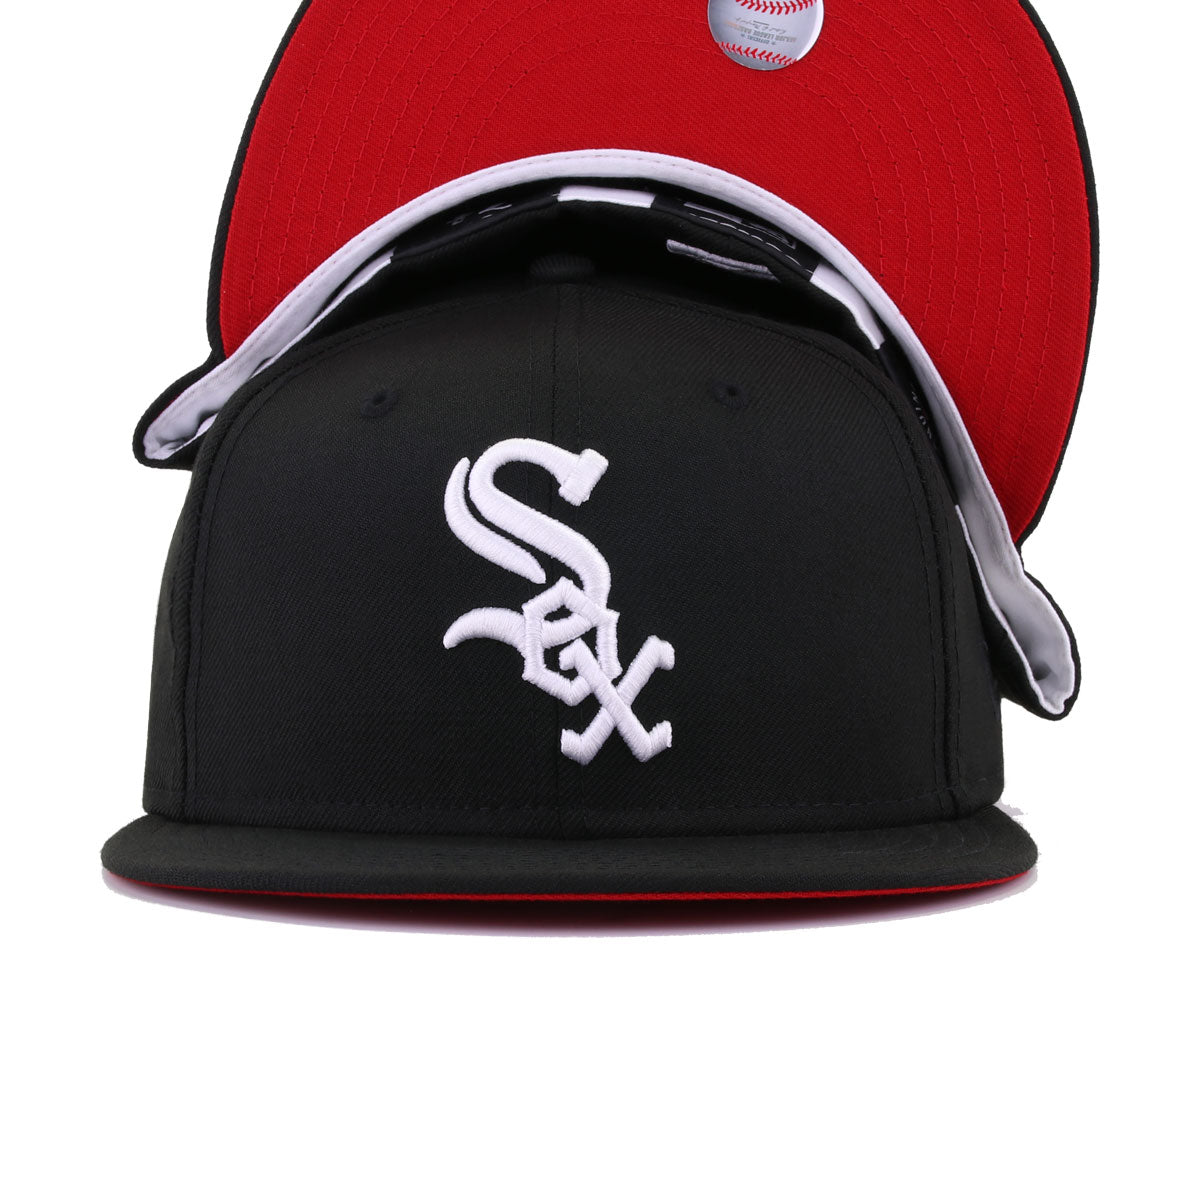 Chicago White Sox Black Red Bottom New Era 59Fifty Fitted